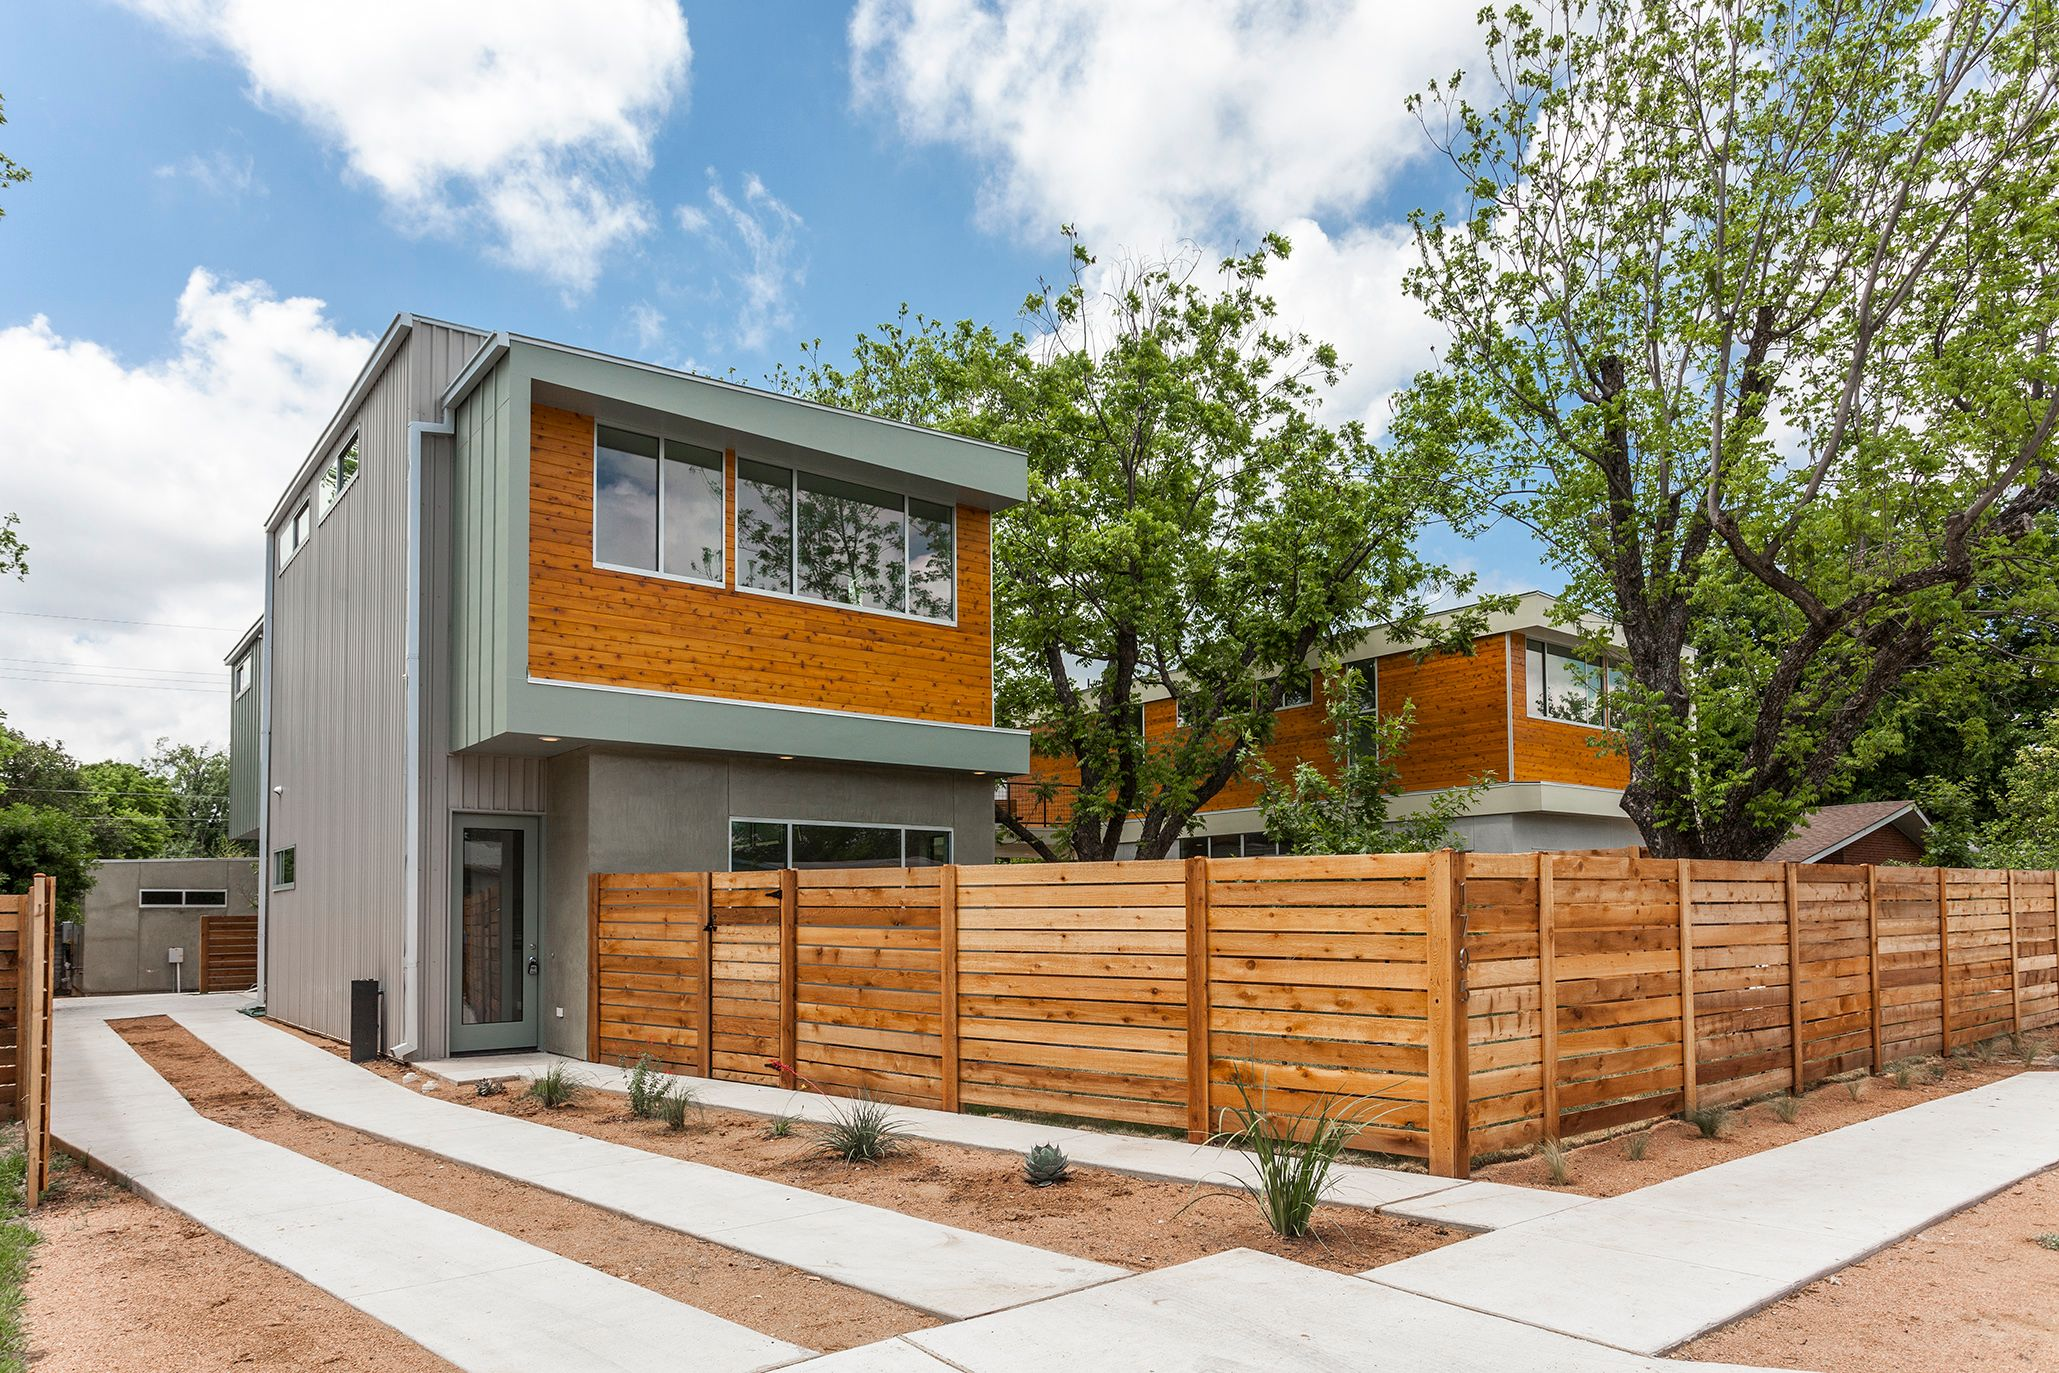 1705 Brentwood A Exterior Front 2.jpg